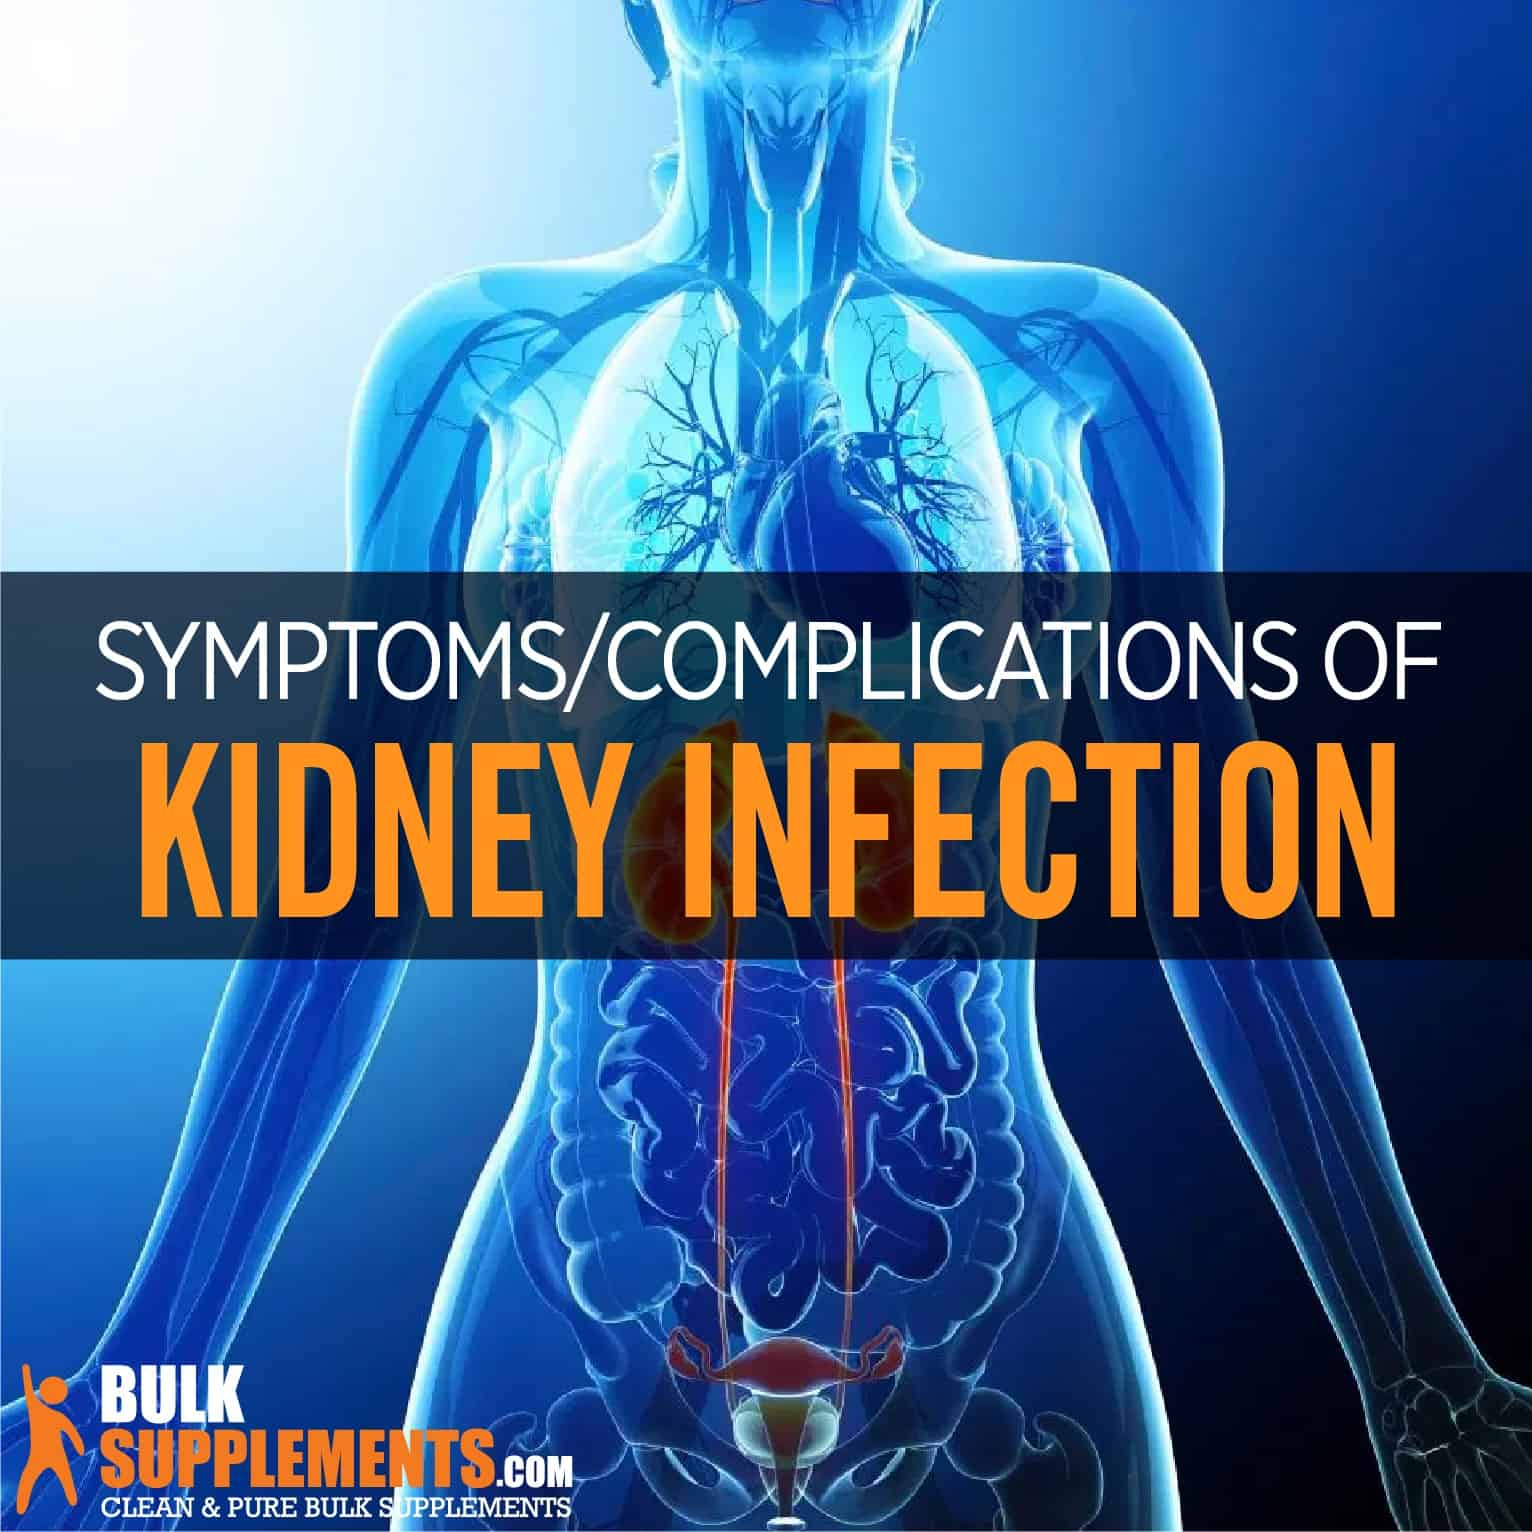 picture of kidney infection pain